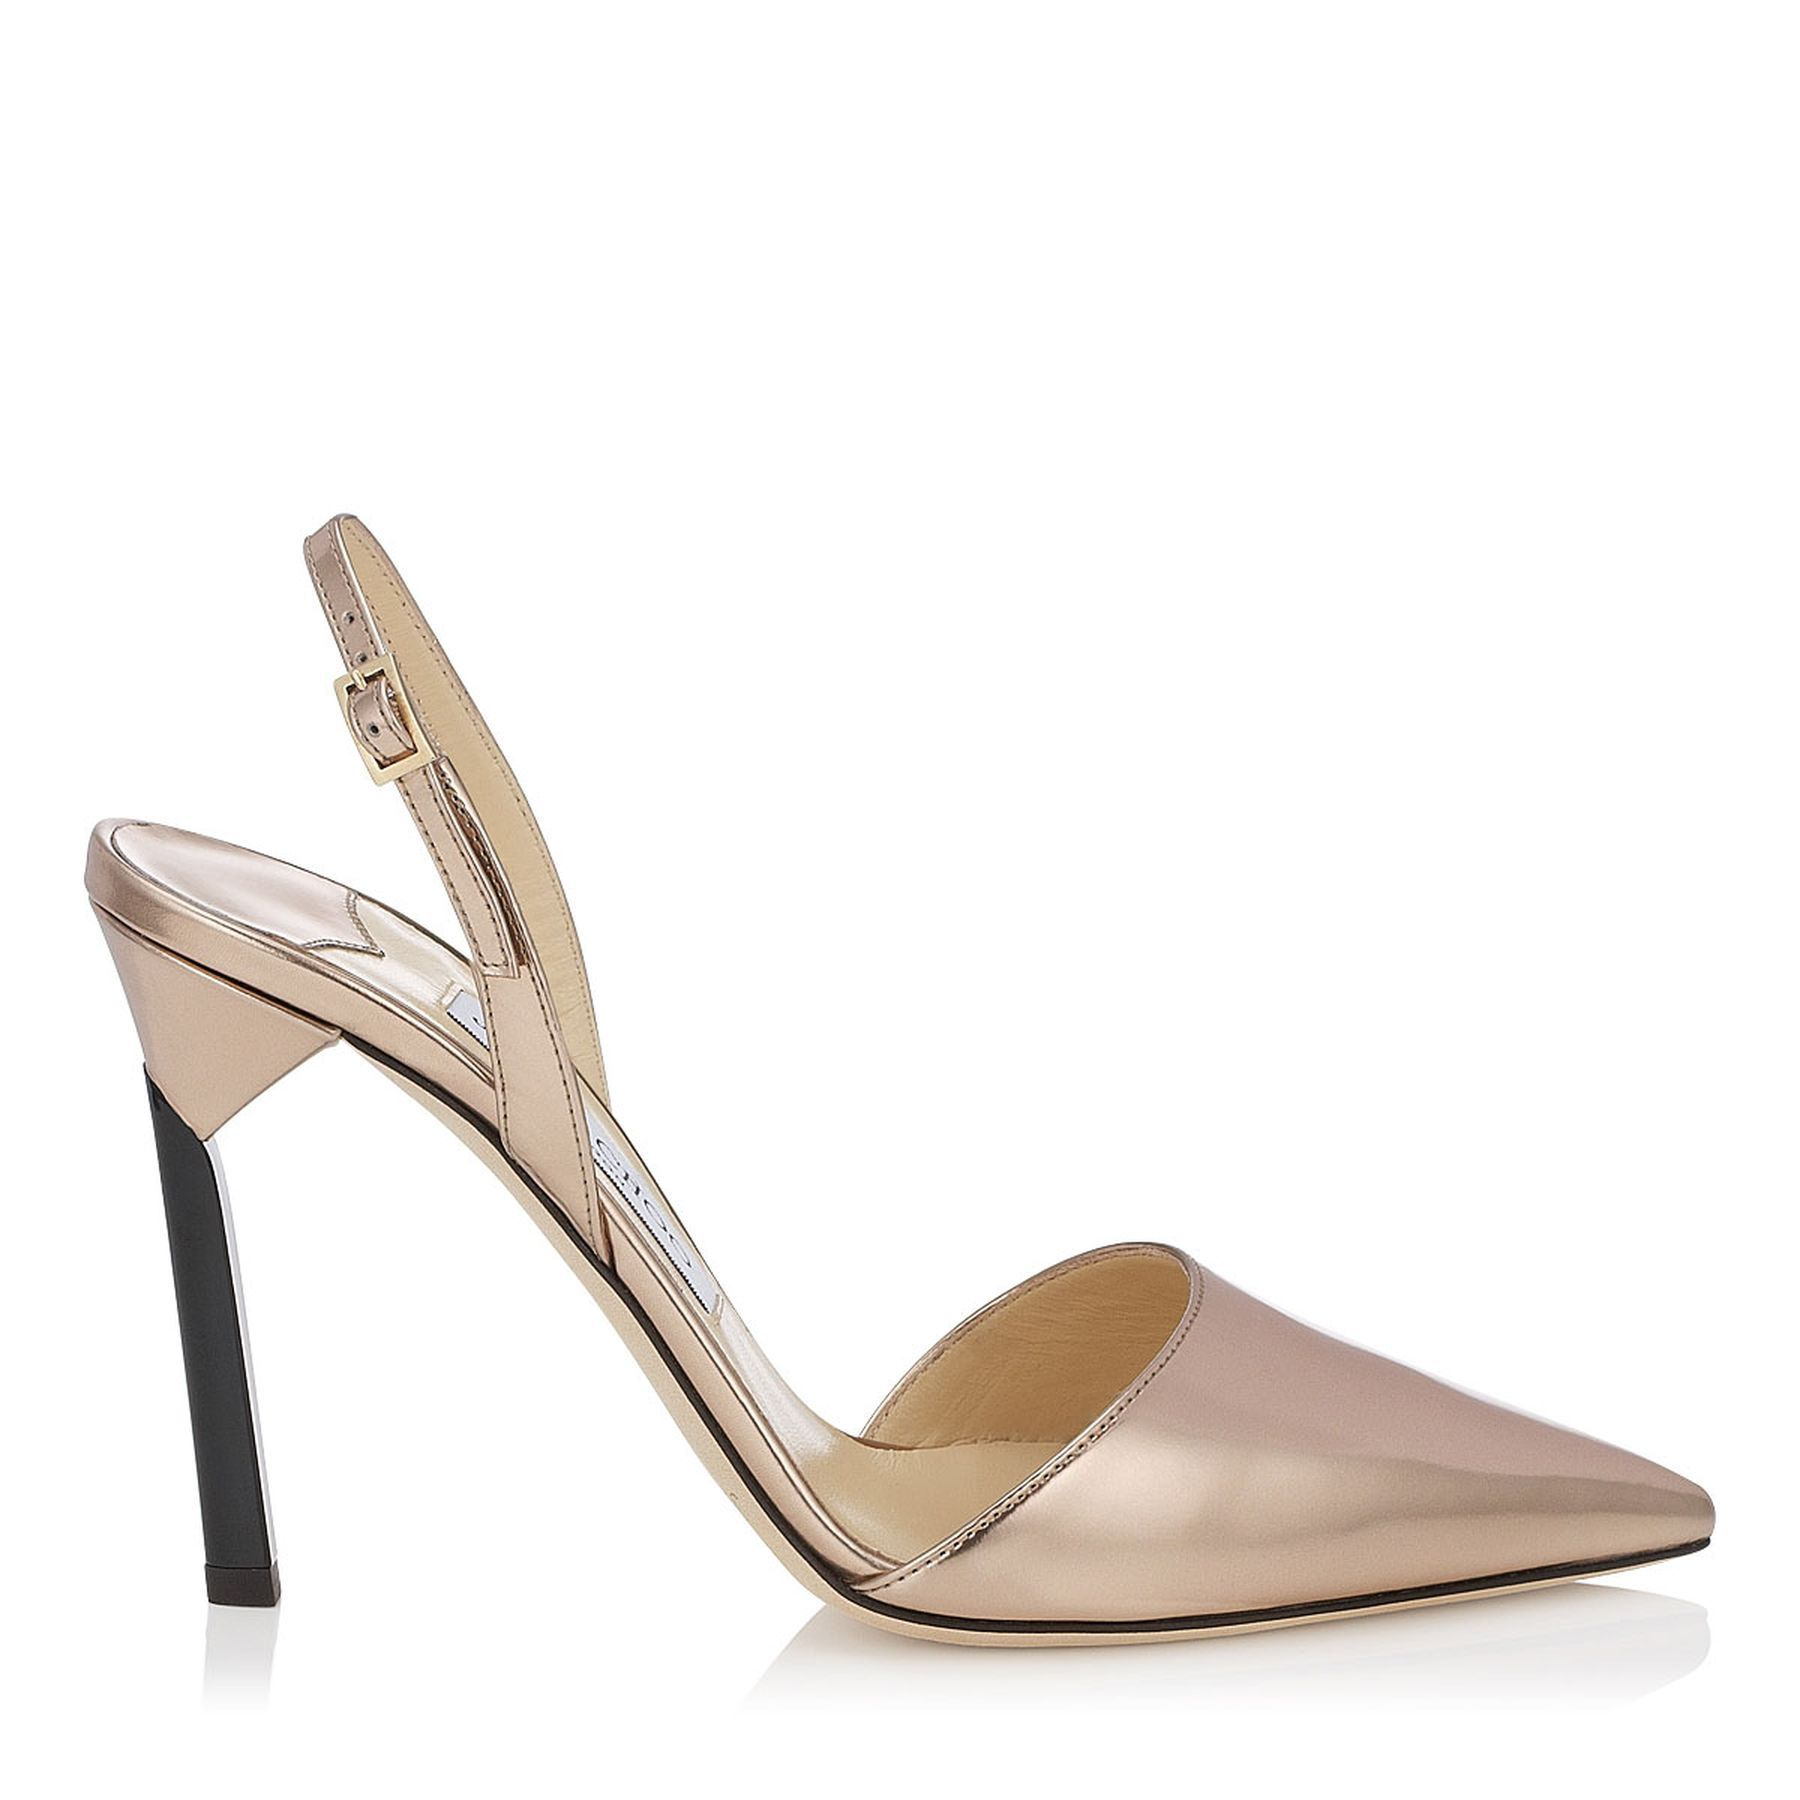 We love these Nude Mirror Leather Pointy Toe Sling Backs   Devleen   Cruise 15   JIMMY CHOO Shoes #shine...x